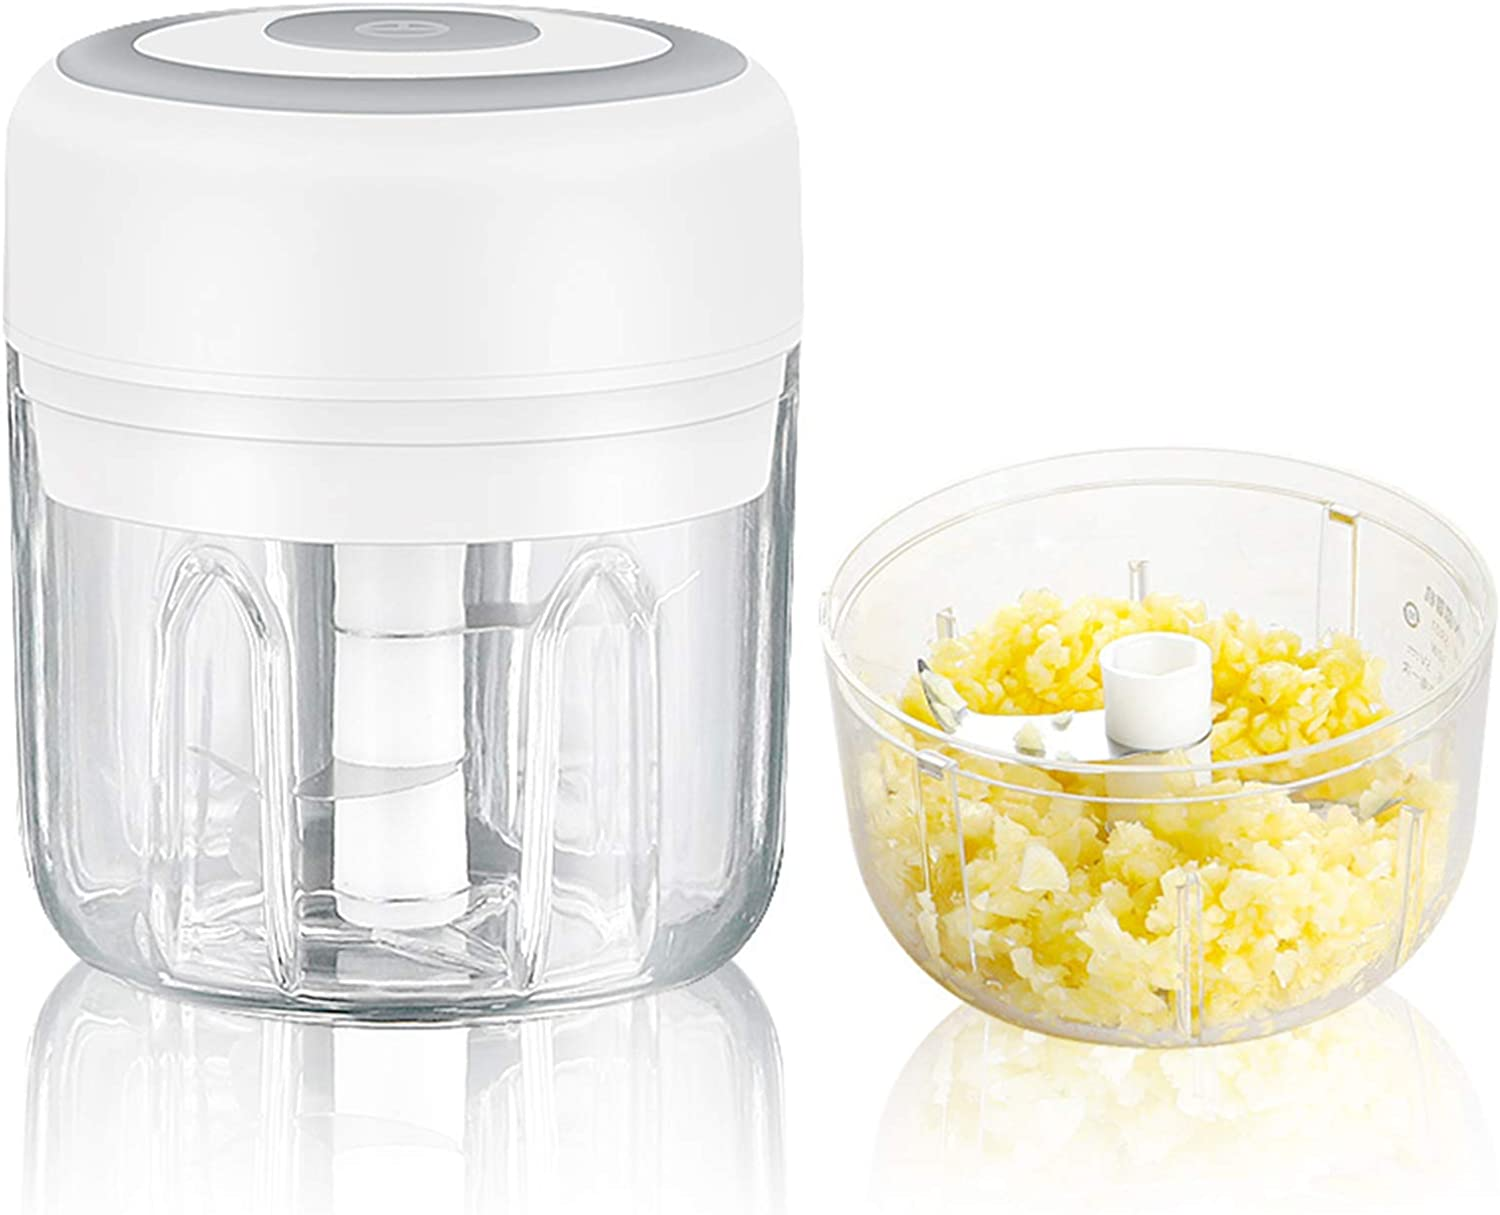 Electric Mini Garlic Chopper,Fits for Cutter Vegetables/Meat Grinder/Garlic Chooper/Fruits Masher/Salad Grinder, Baby Food Maker,Easy Cleaning,White(250ML)